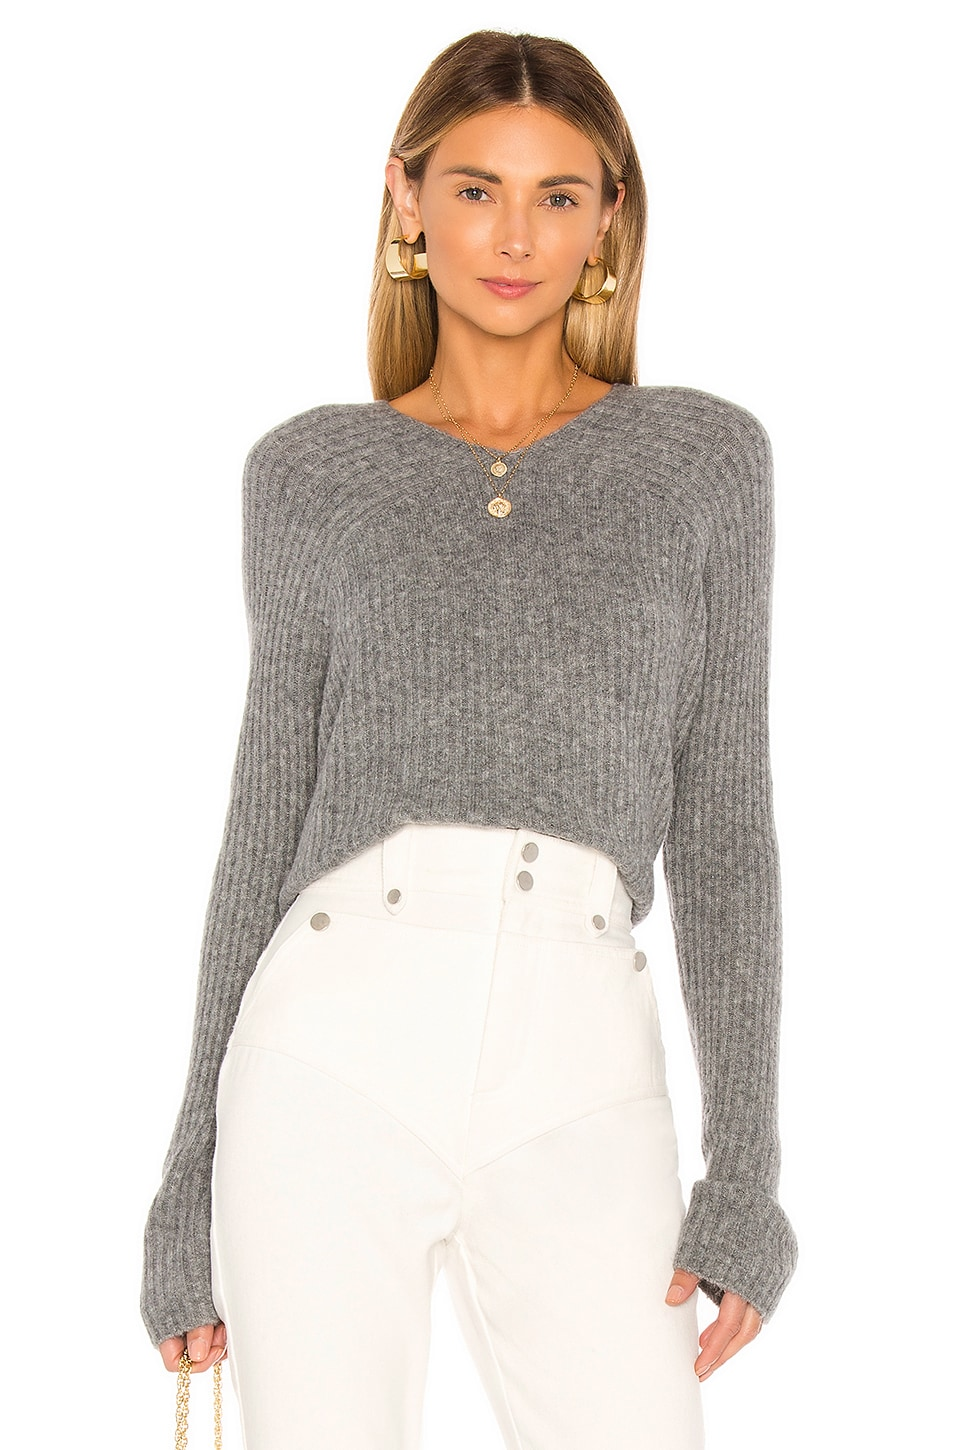 L'Academie Antonia Sweater in Charcoal